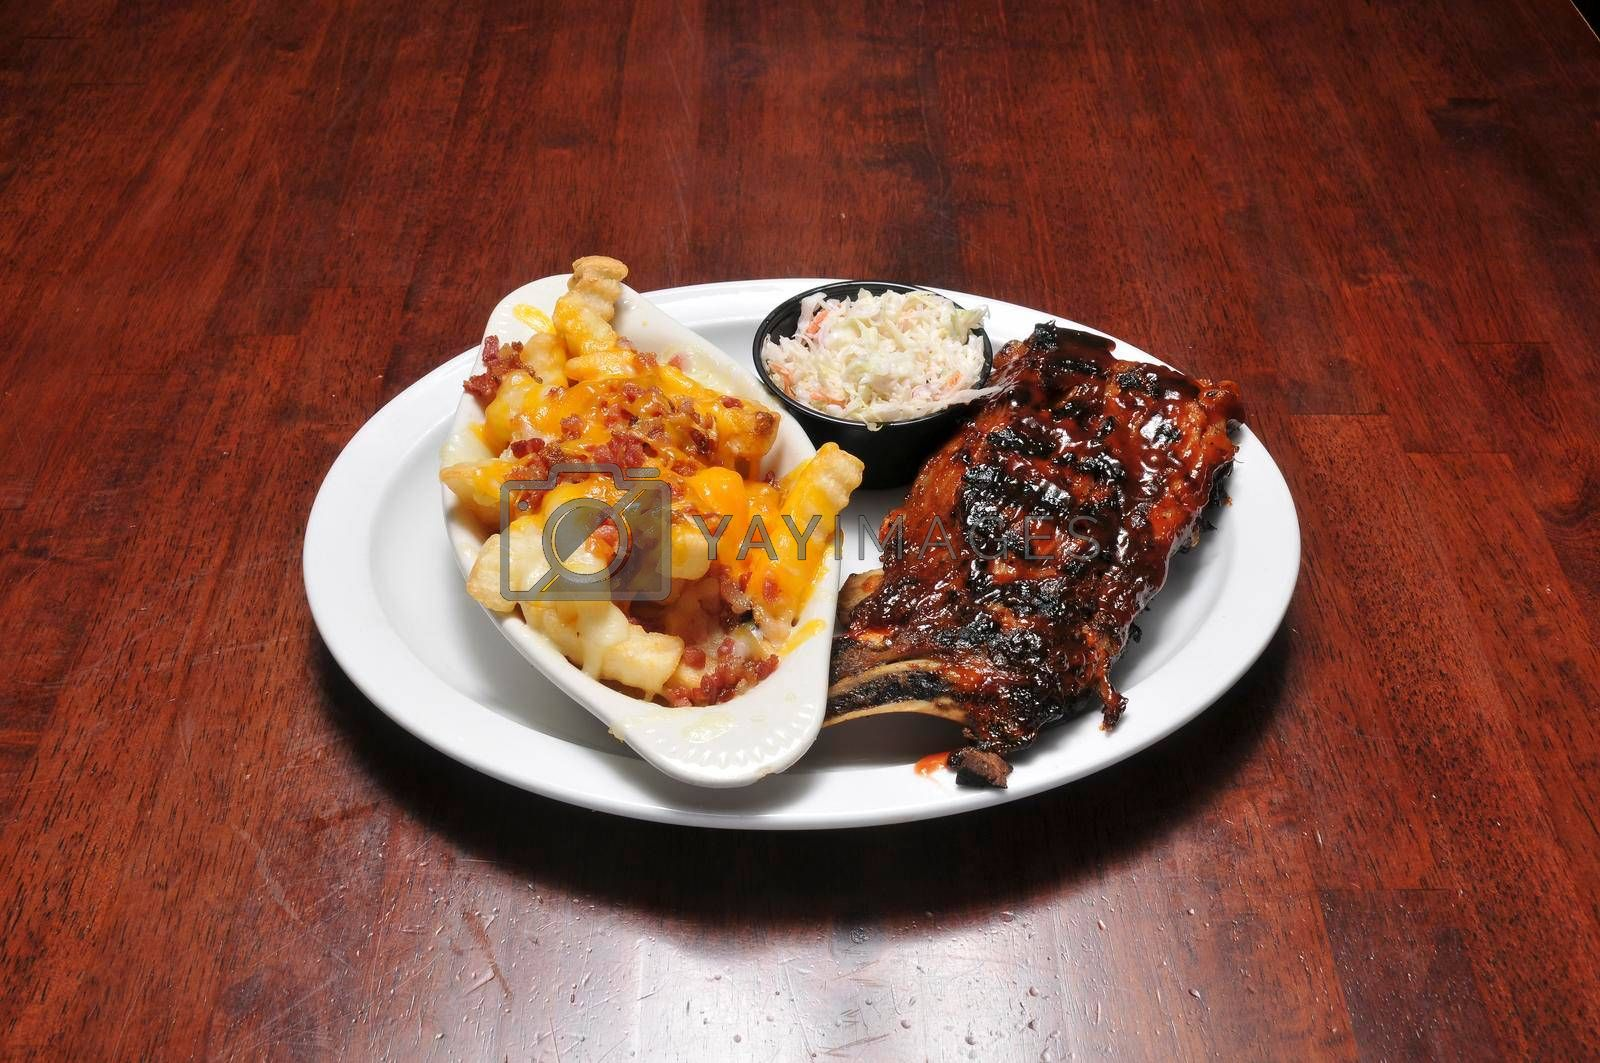 Delicious American cuisine known as barbeque ribs